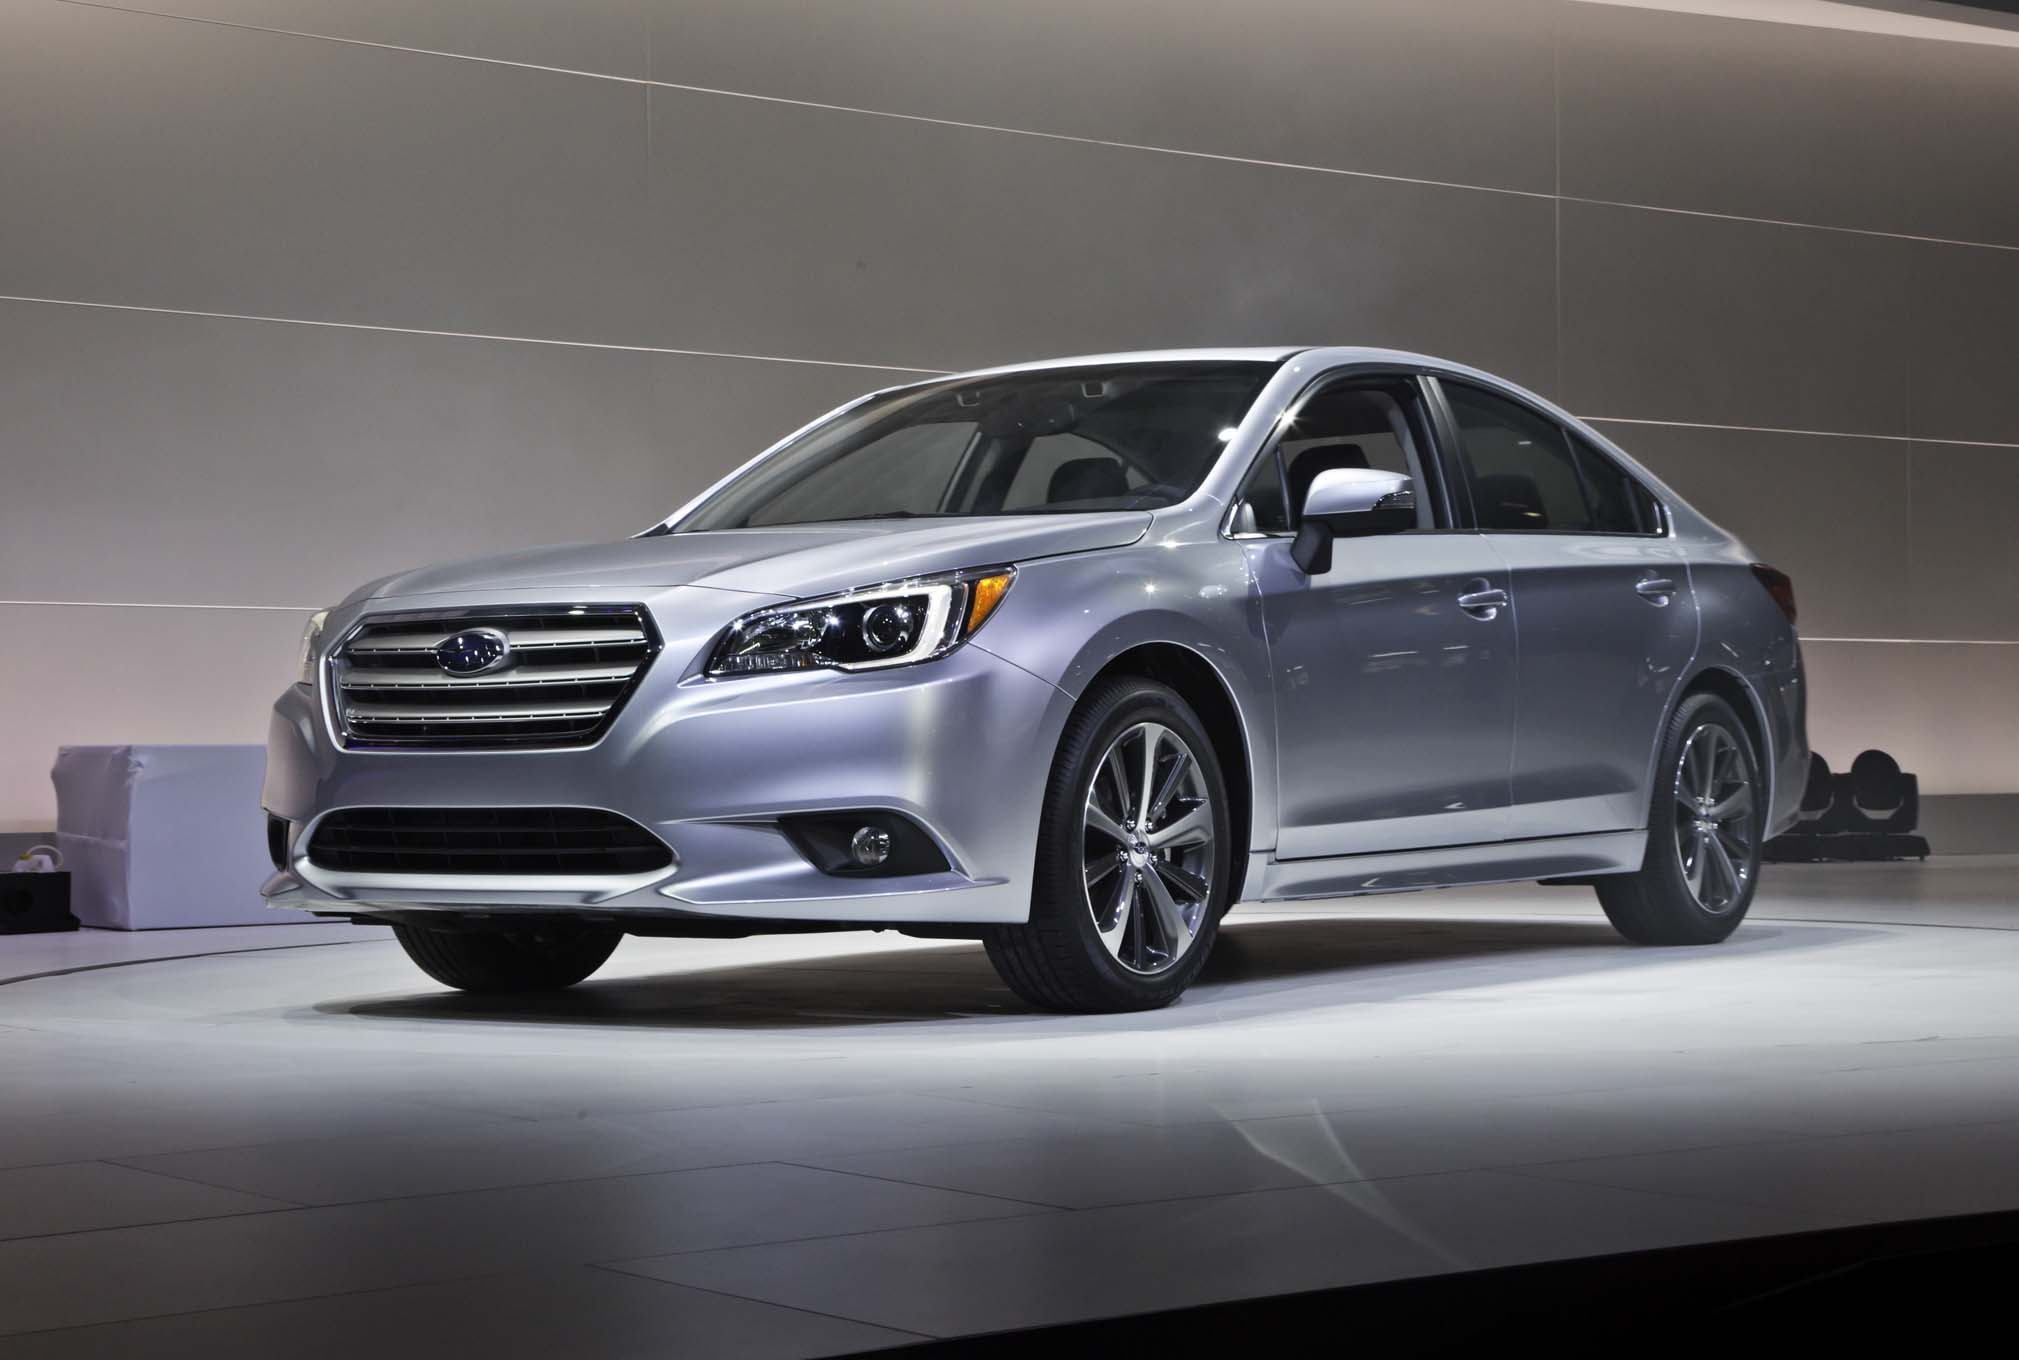 2015 Subaru Legacy Front Three Quarters 031